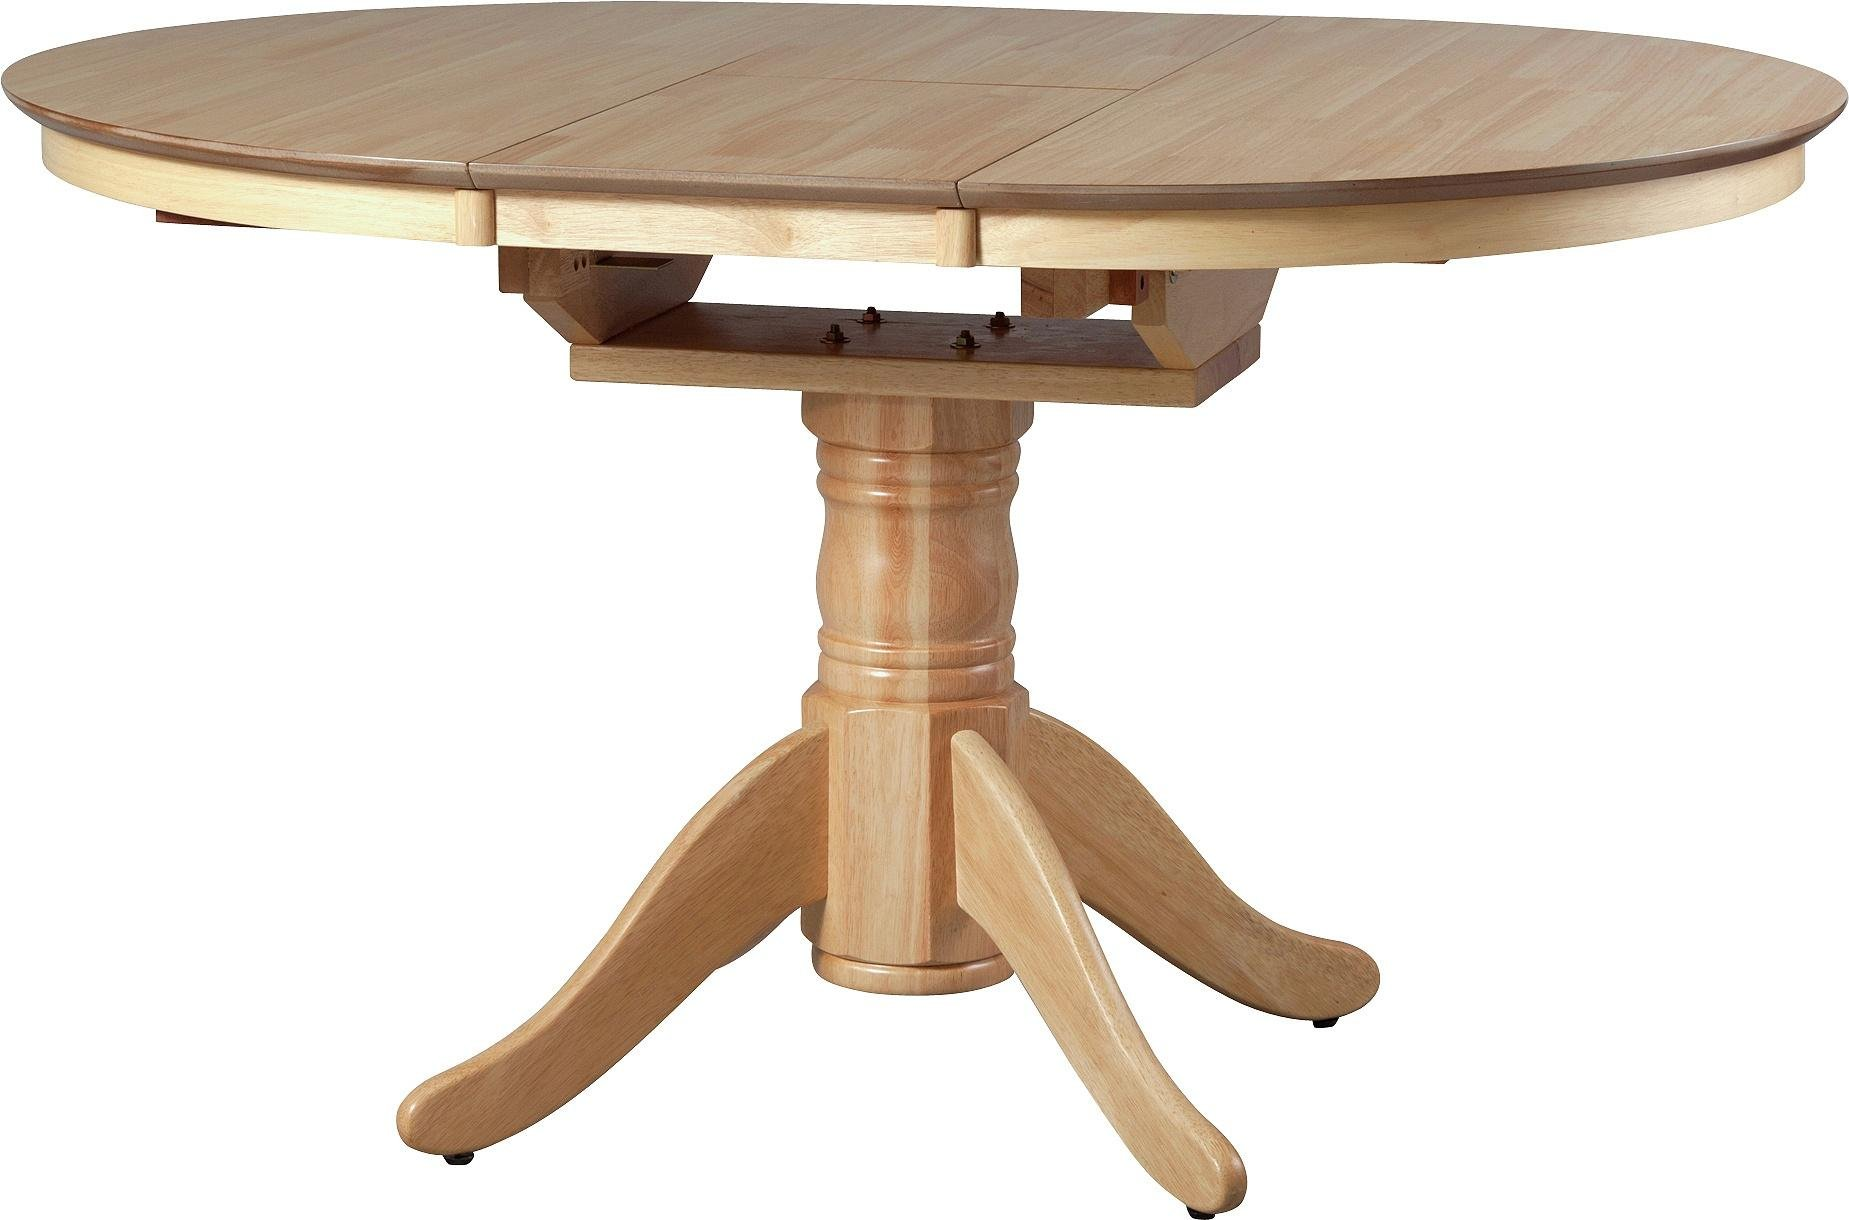 Buy Collection Kentucky Extendable Dining Table Natural  : 6038241RZ002AUC1401307Webampw570amph513 from www.argos.co.uk size 570 x 513 jpeg 20kB